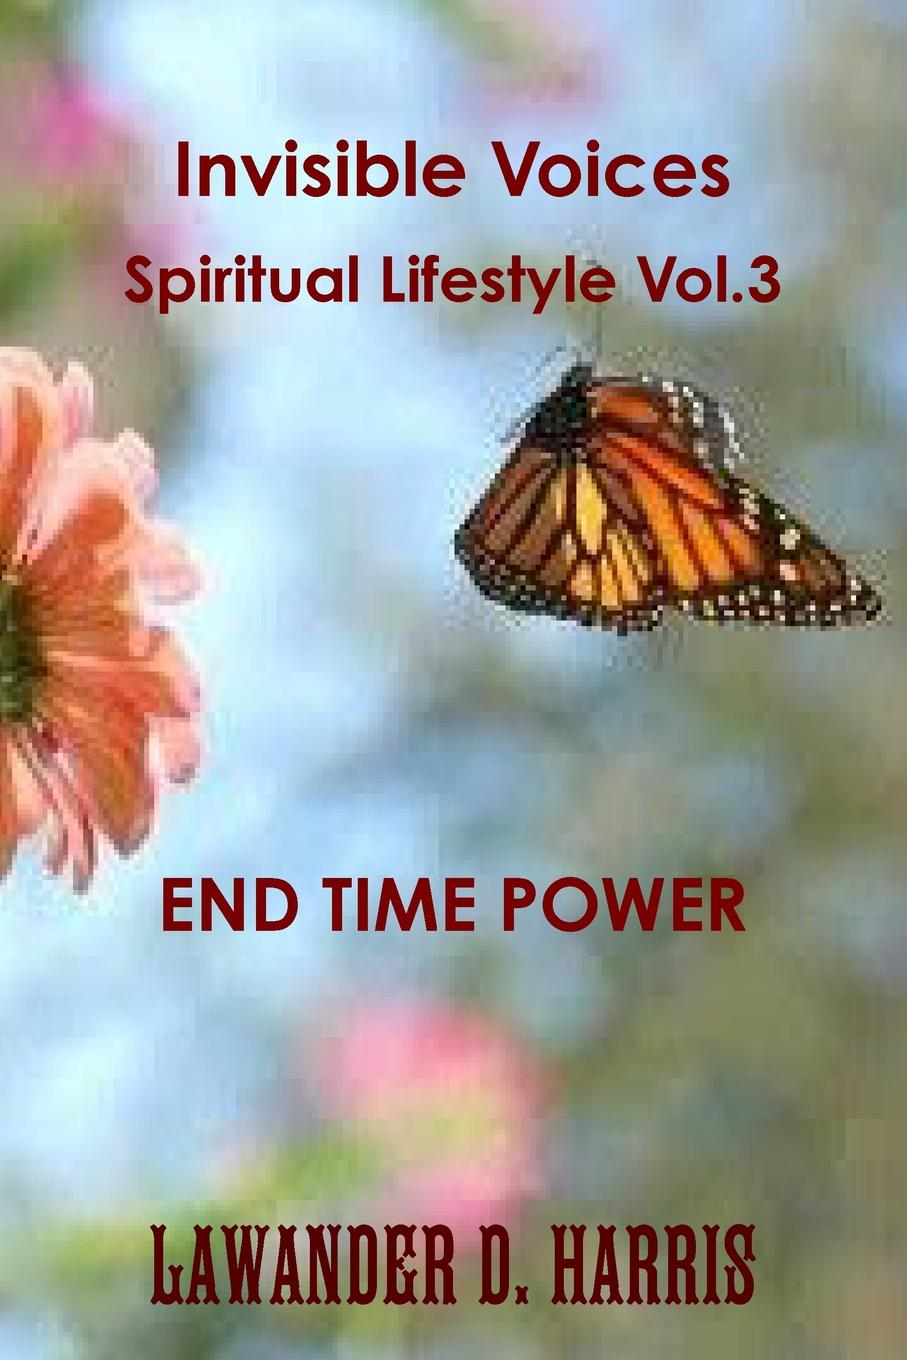 Lawander Harris Invisible Voices Spiritual Lifestyle Vol.3 END TIME POWER lawander harris invisible voices spiritual lifestyle vol 2 advantage